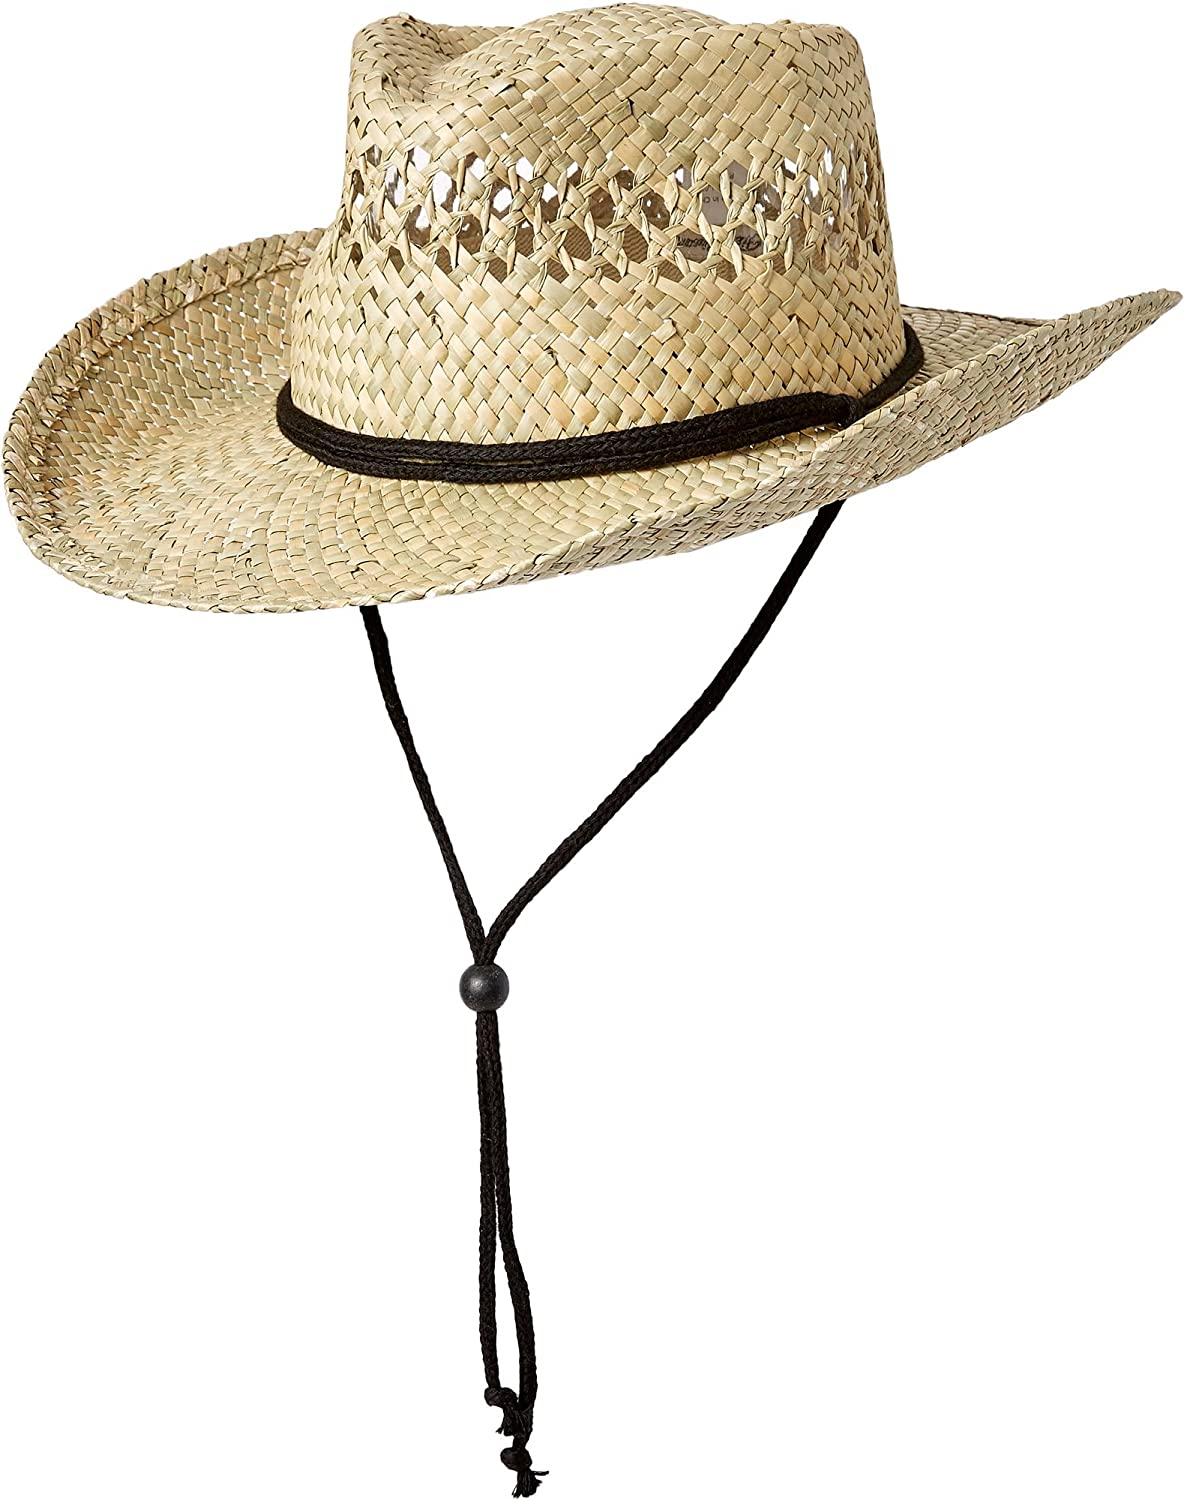 Field & Stream Men 'sシーグラスOutback Straw Hat – Natural, Onesize   B07CM2YBP6